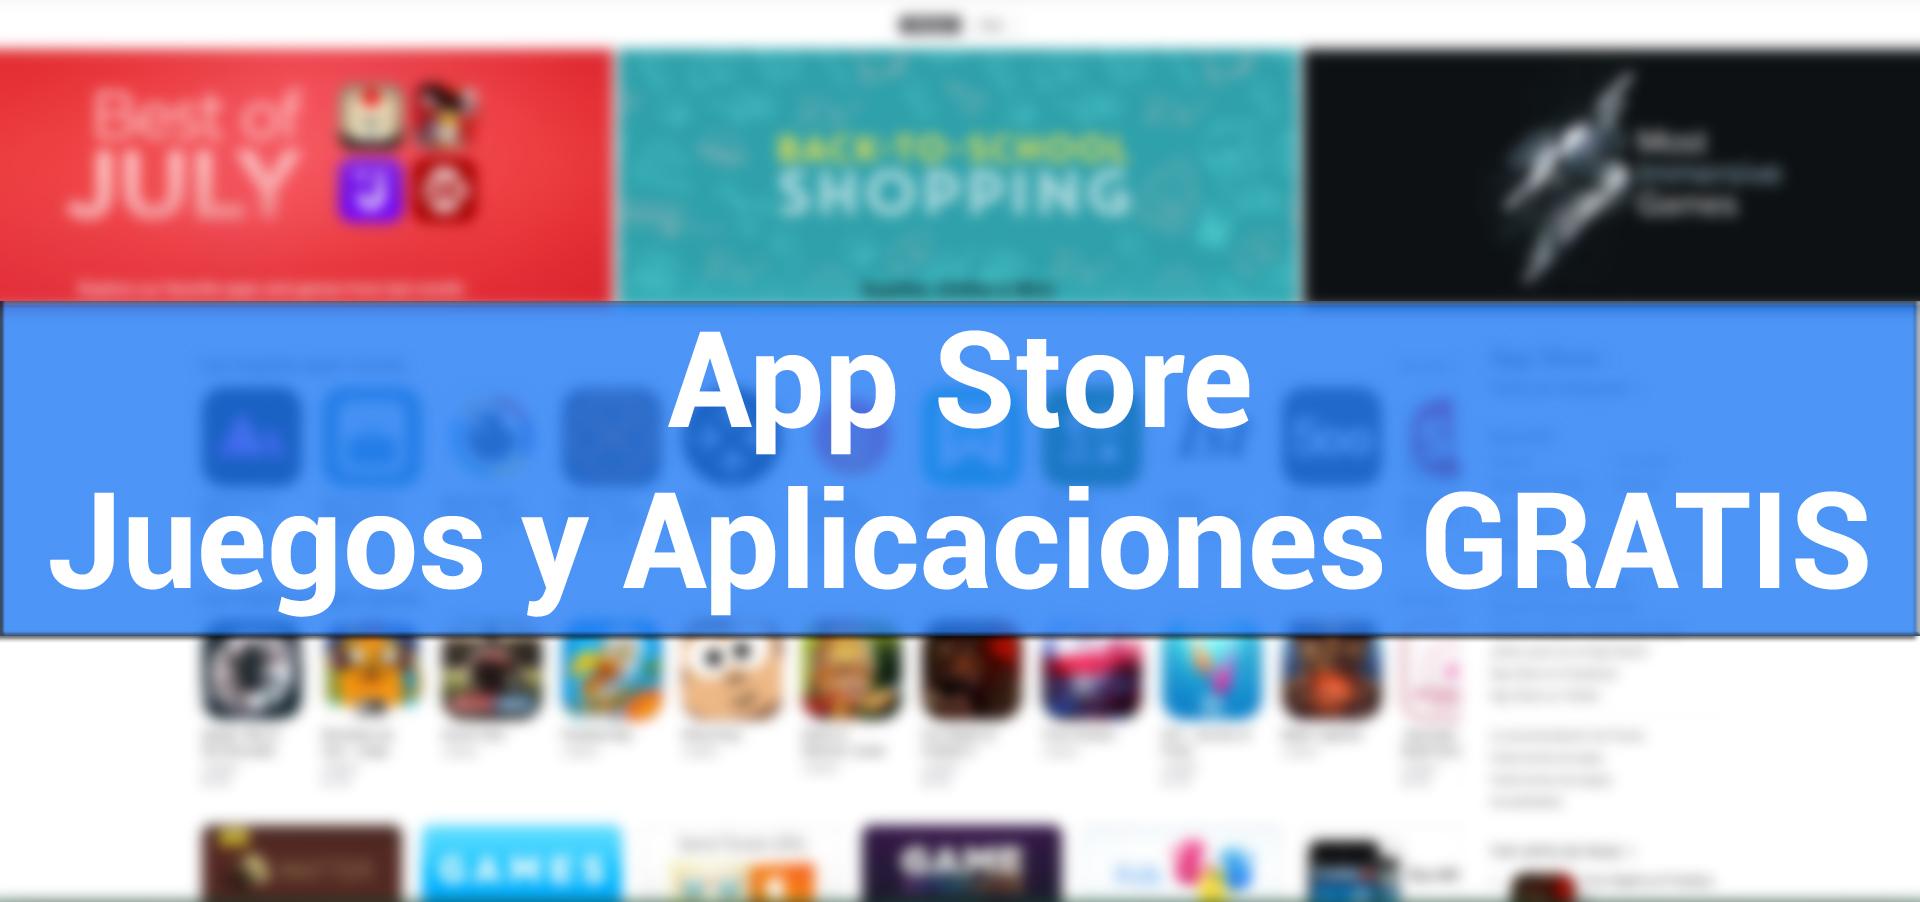 Apps y Jugos gratis para iPhone y iPad